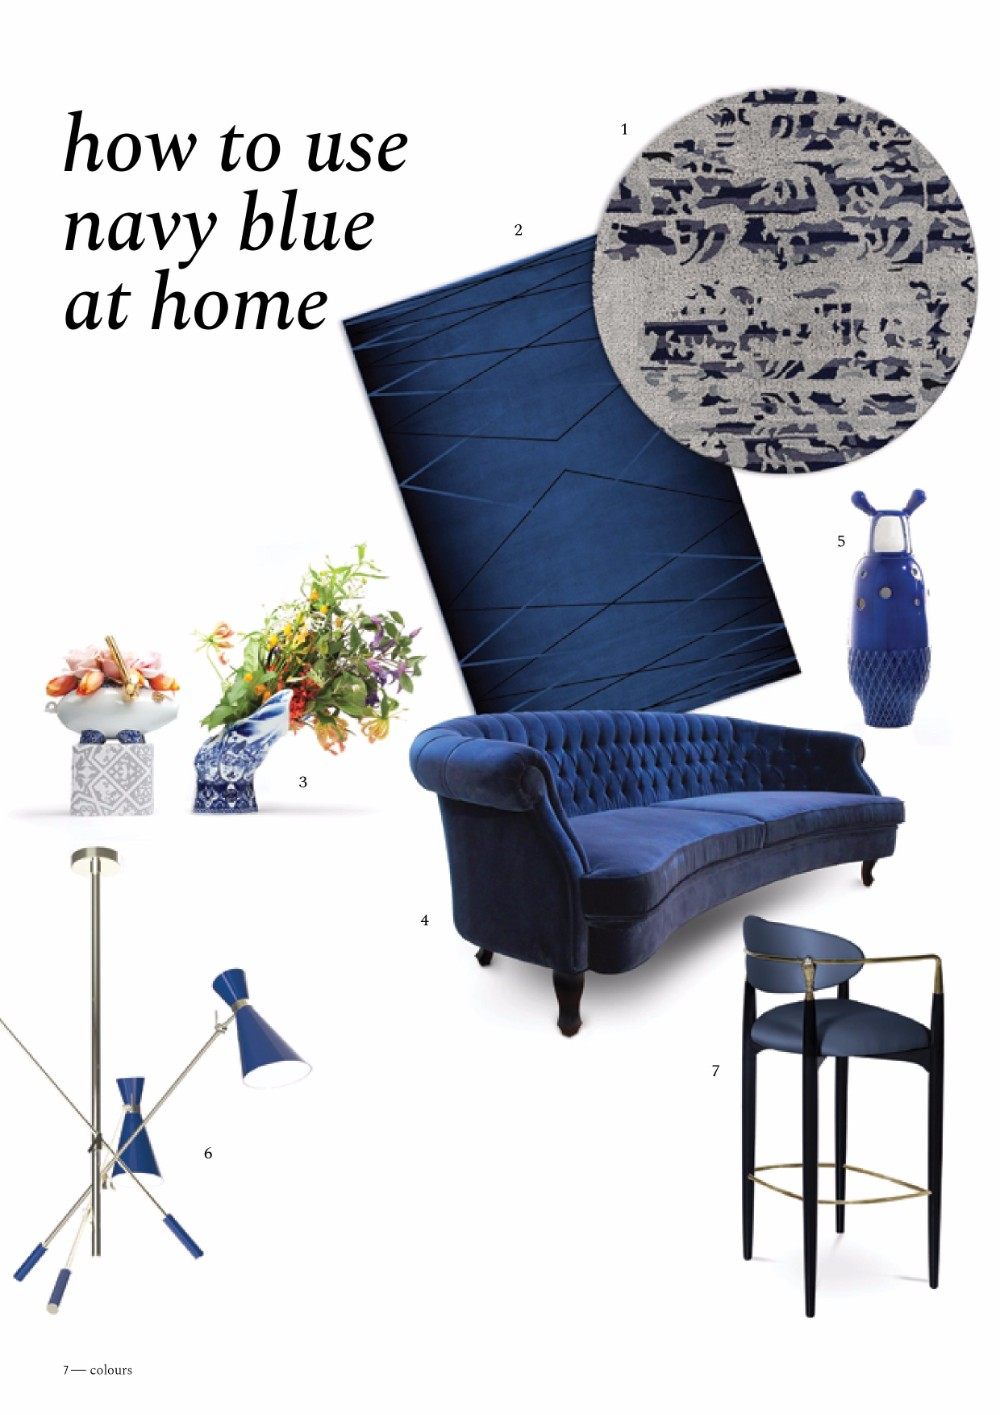 trends Trends Forecast for Fall/Winter 2018 trends forecast 2018 colors navy blue page 007